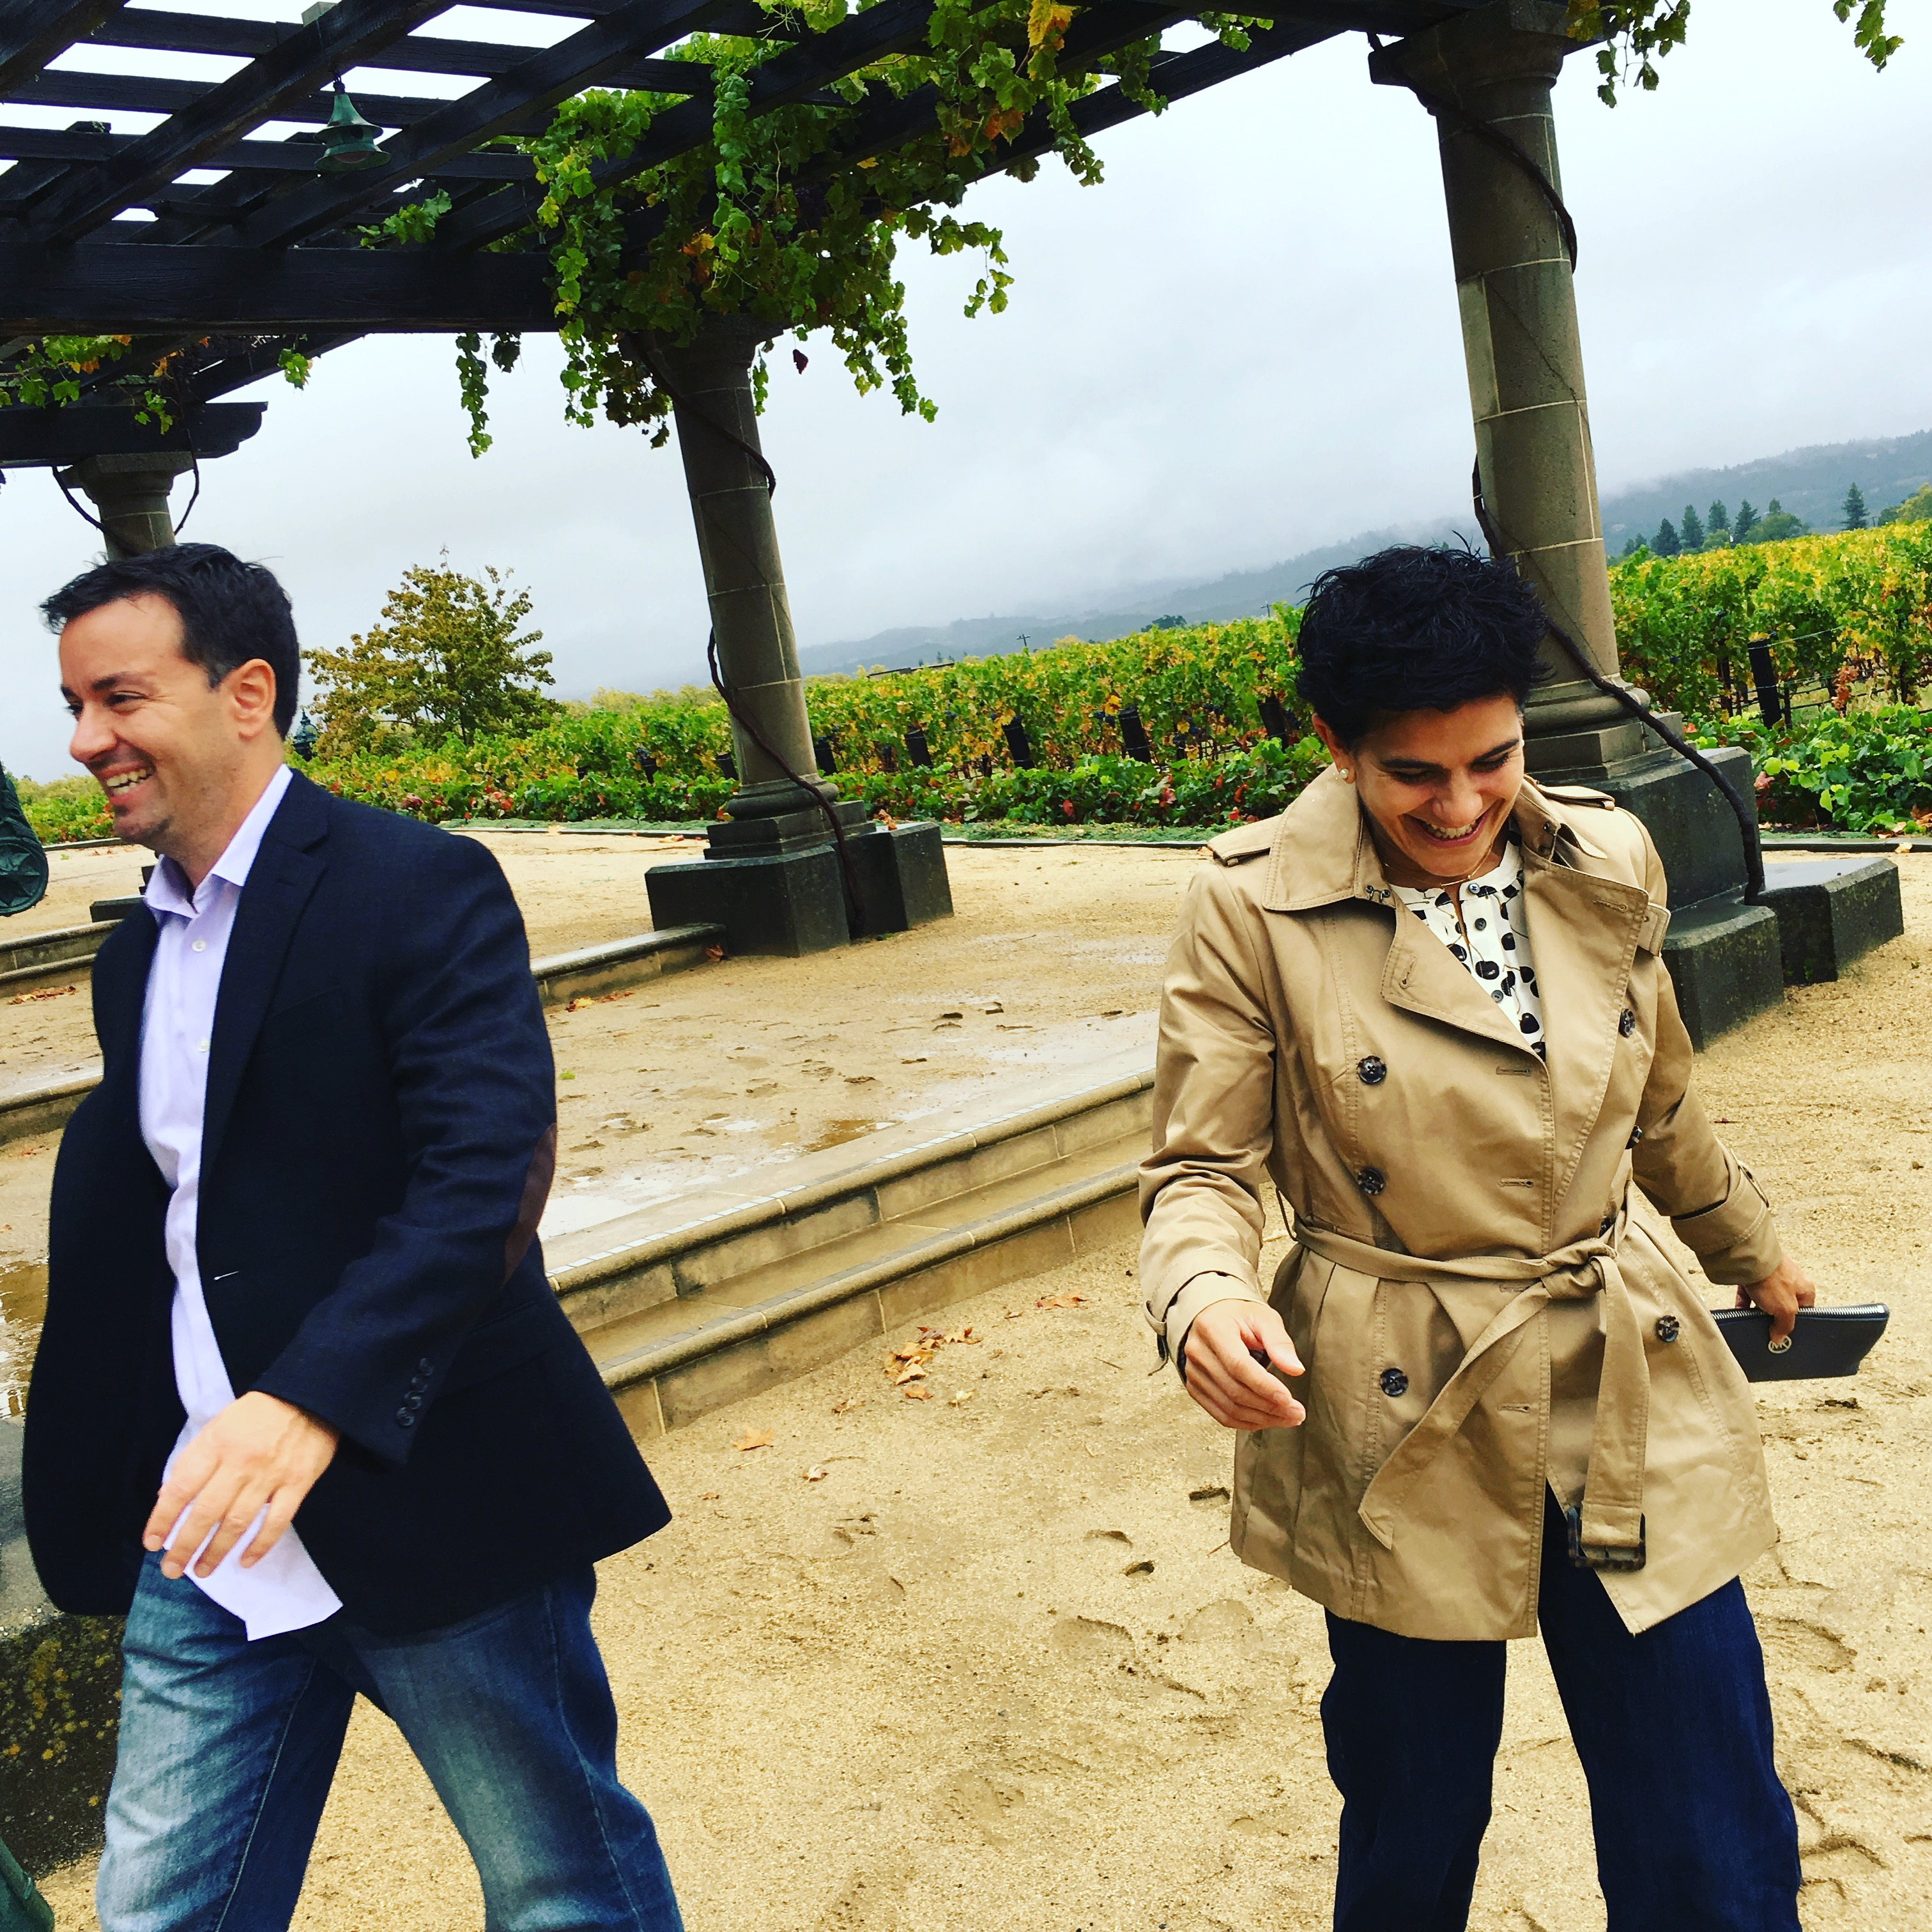 There was a lot of laughing on the wine tours!